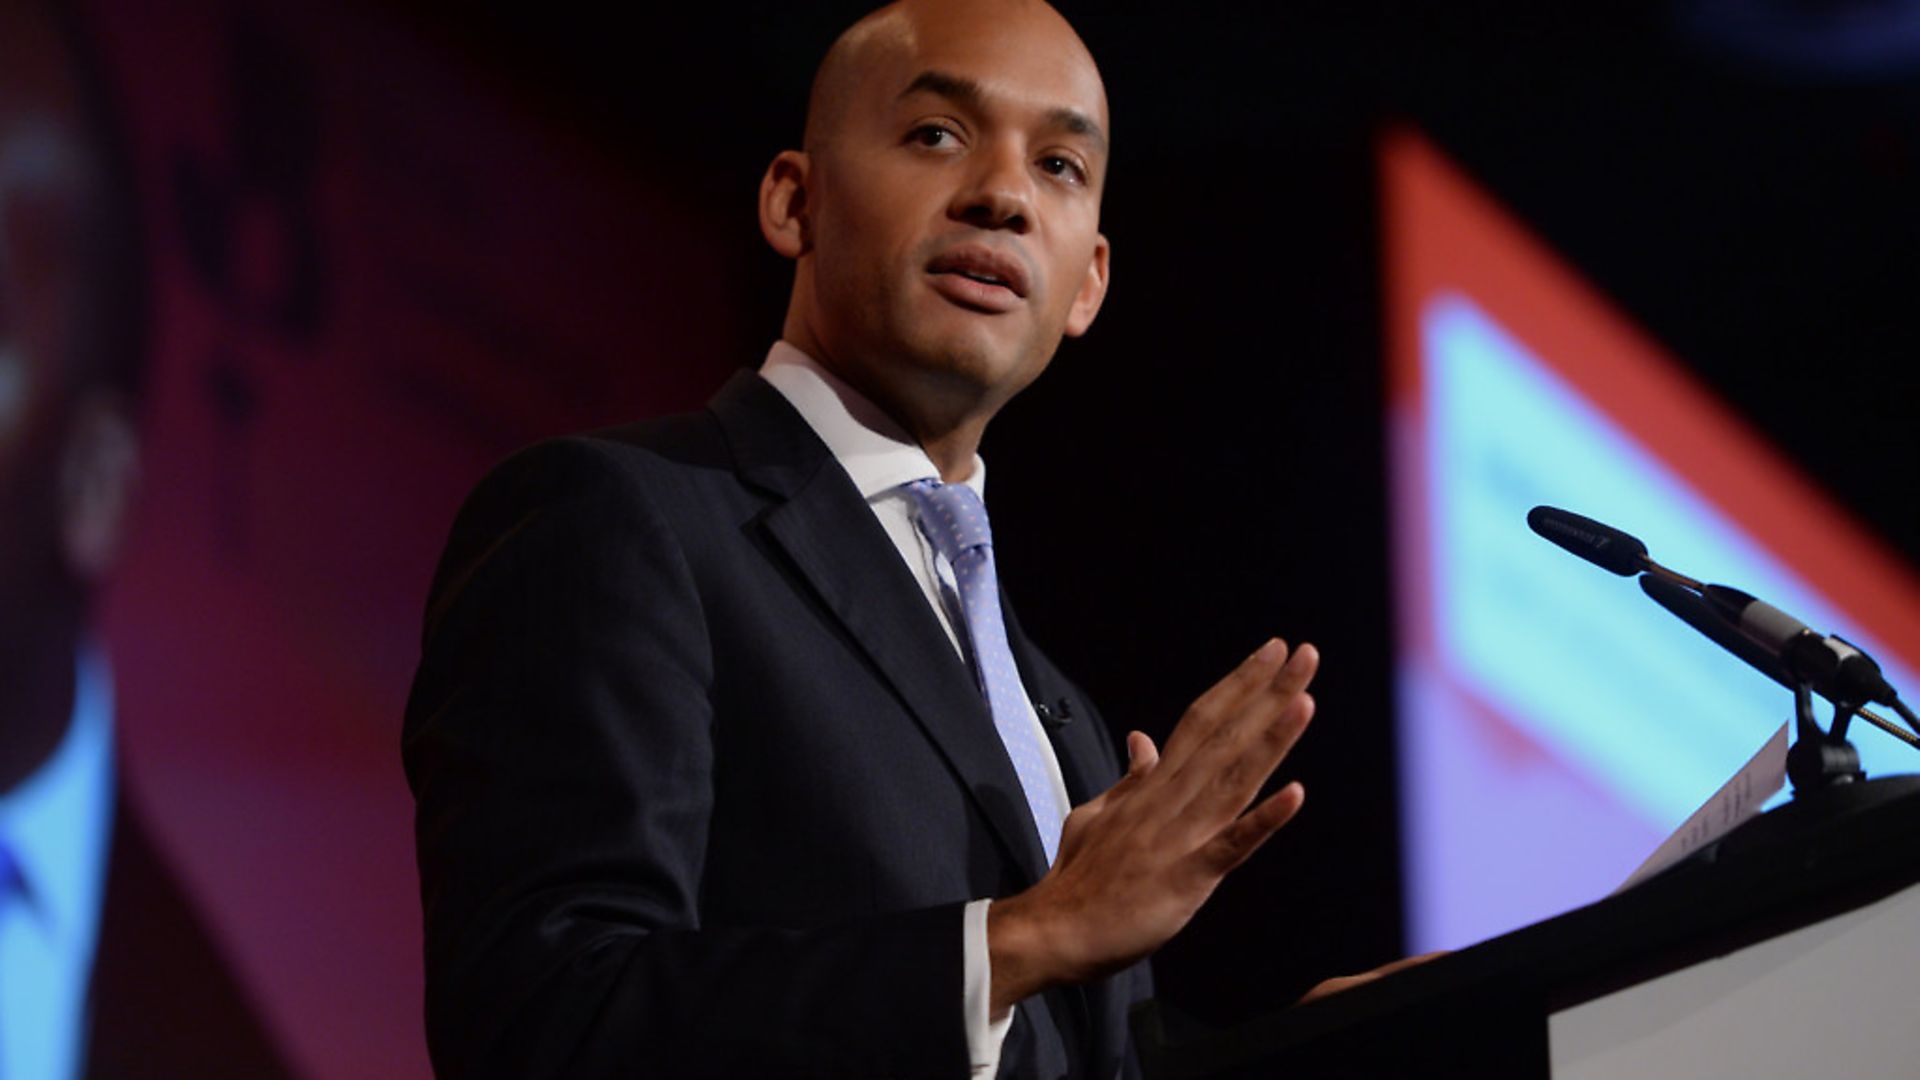 Labour MP Chuka Umunna. Picture: Anthony Devlin/PA Archive/PA Images - Credit: PA Archive/PA Images